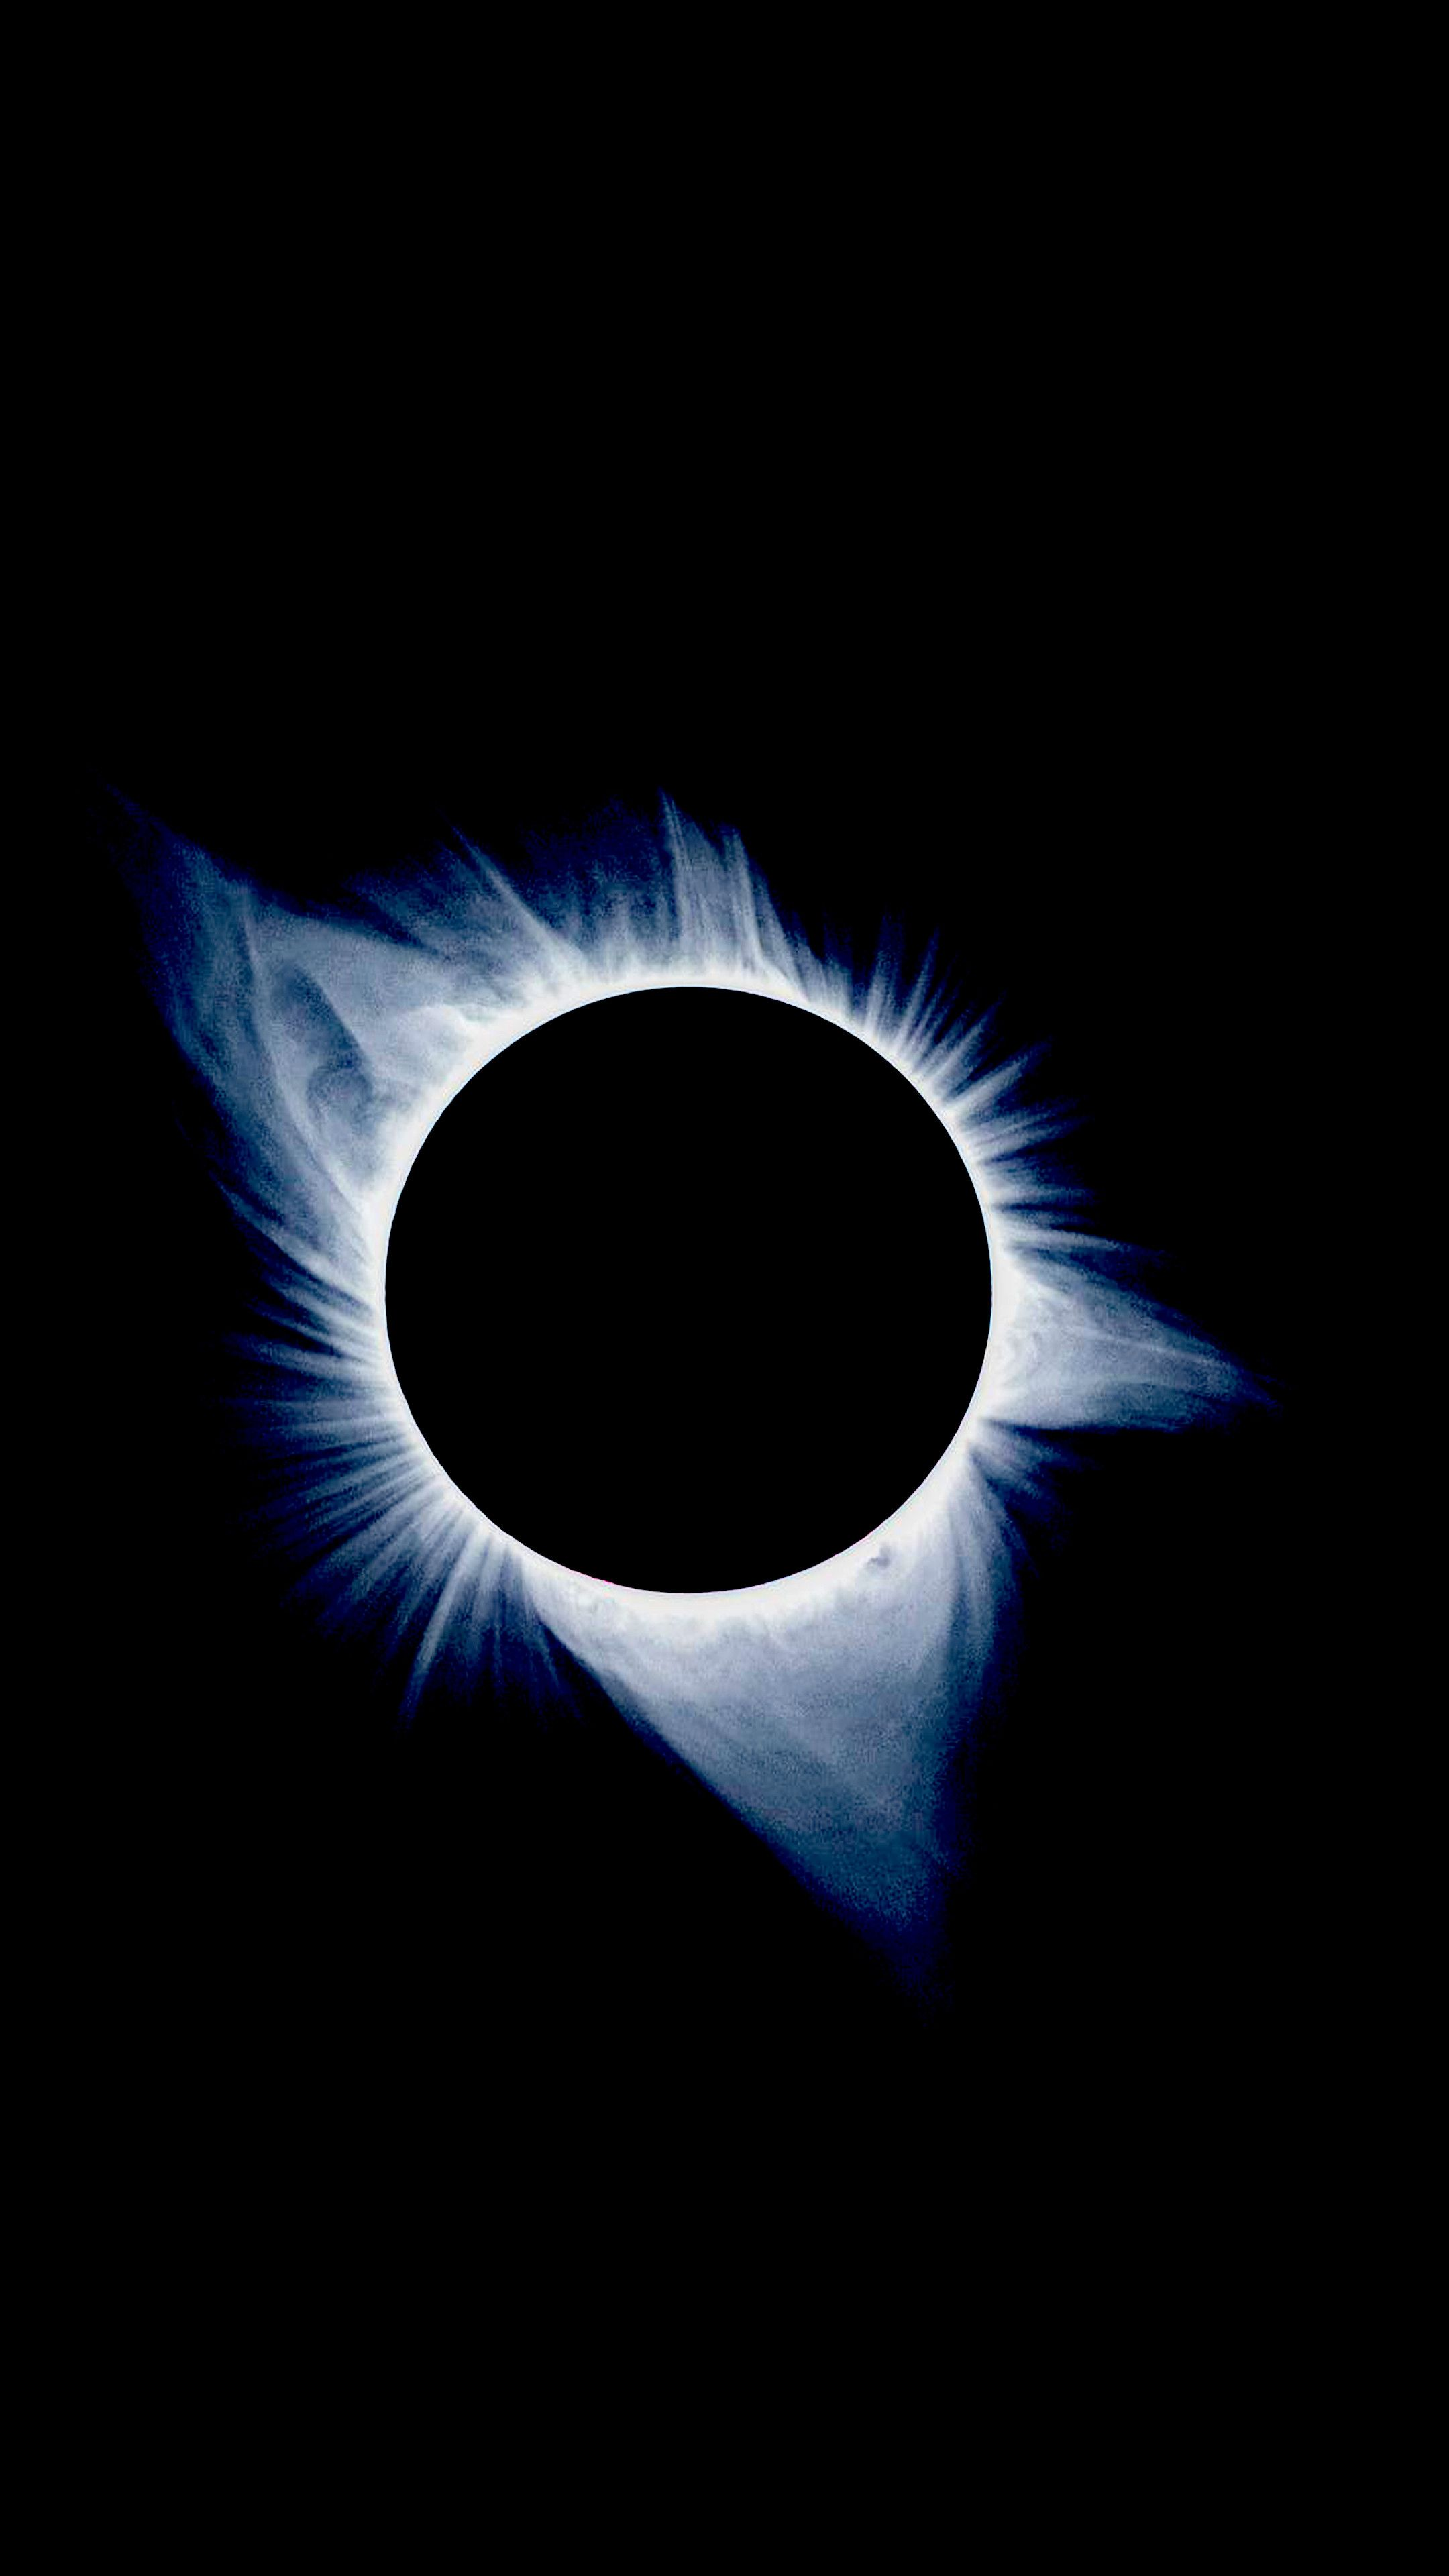 2160x3840 Eclipse Dark AMOLED Wallpaper Cool Wallpapers in 2019 2160x3840